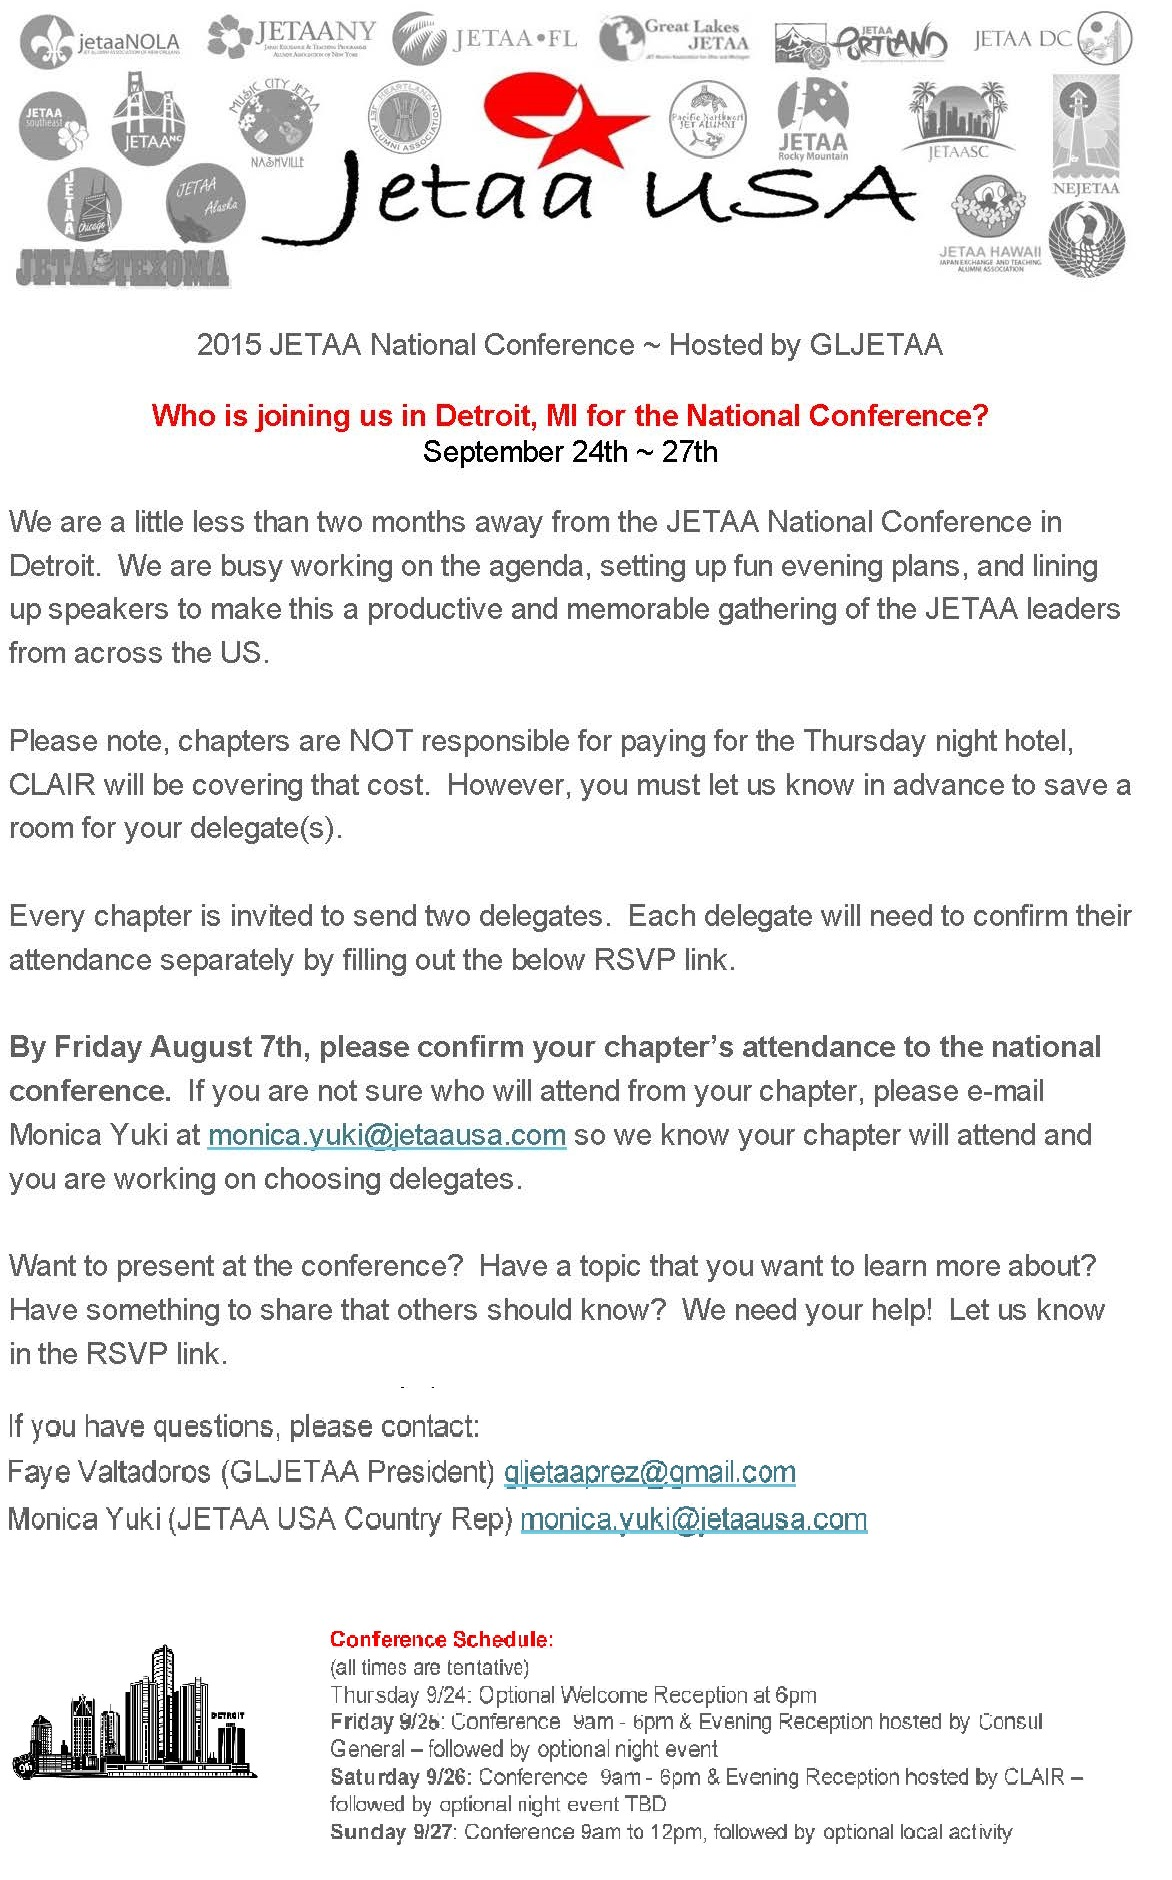 Sign up for the JETAA National Conference in Detroit